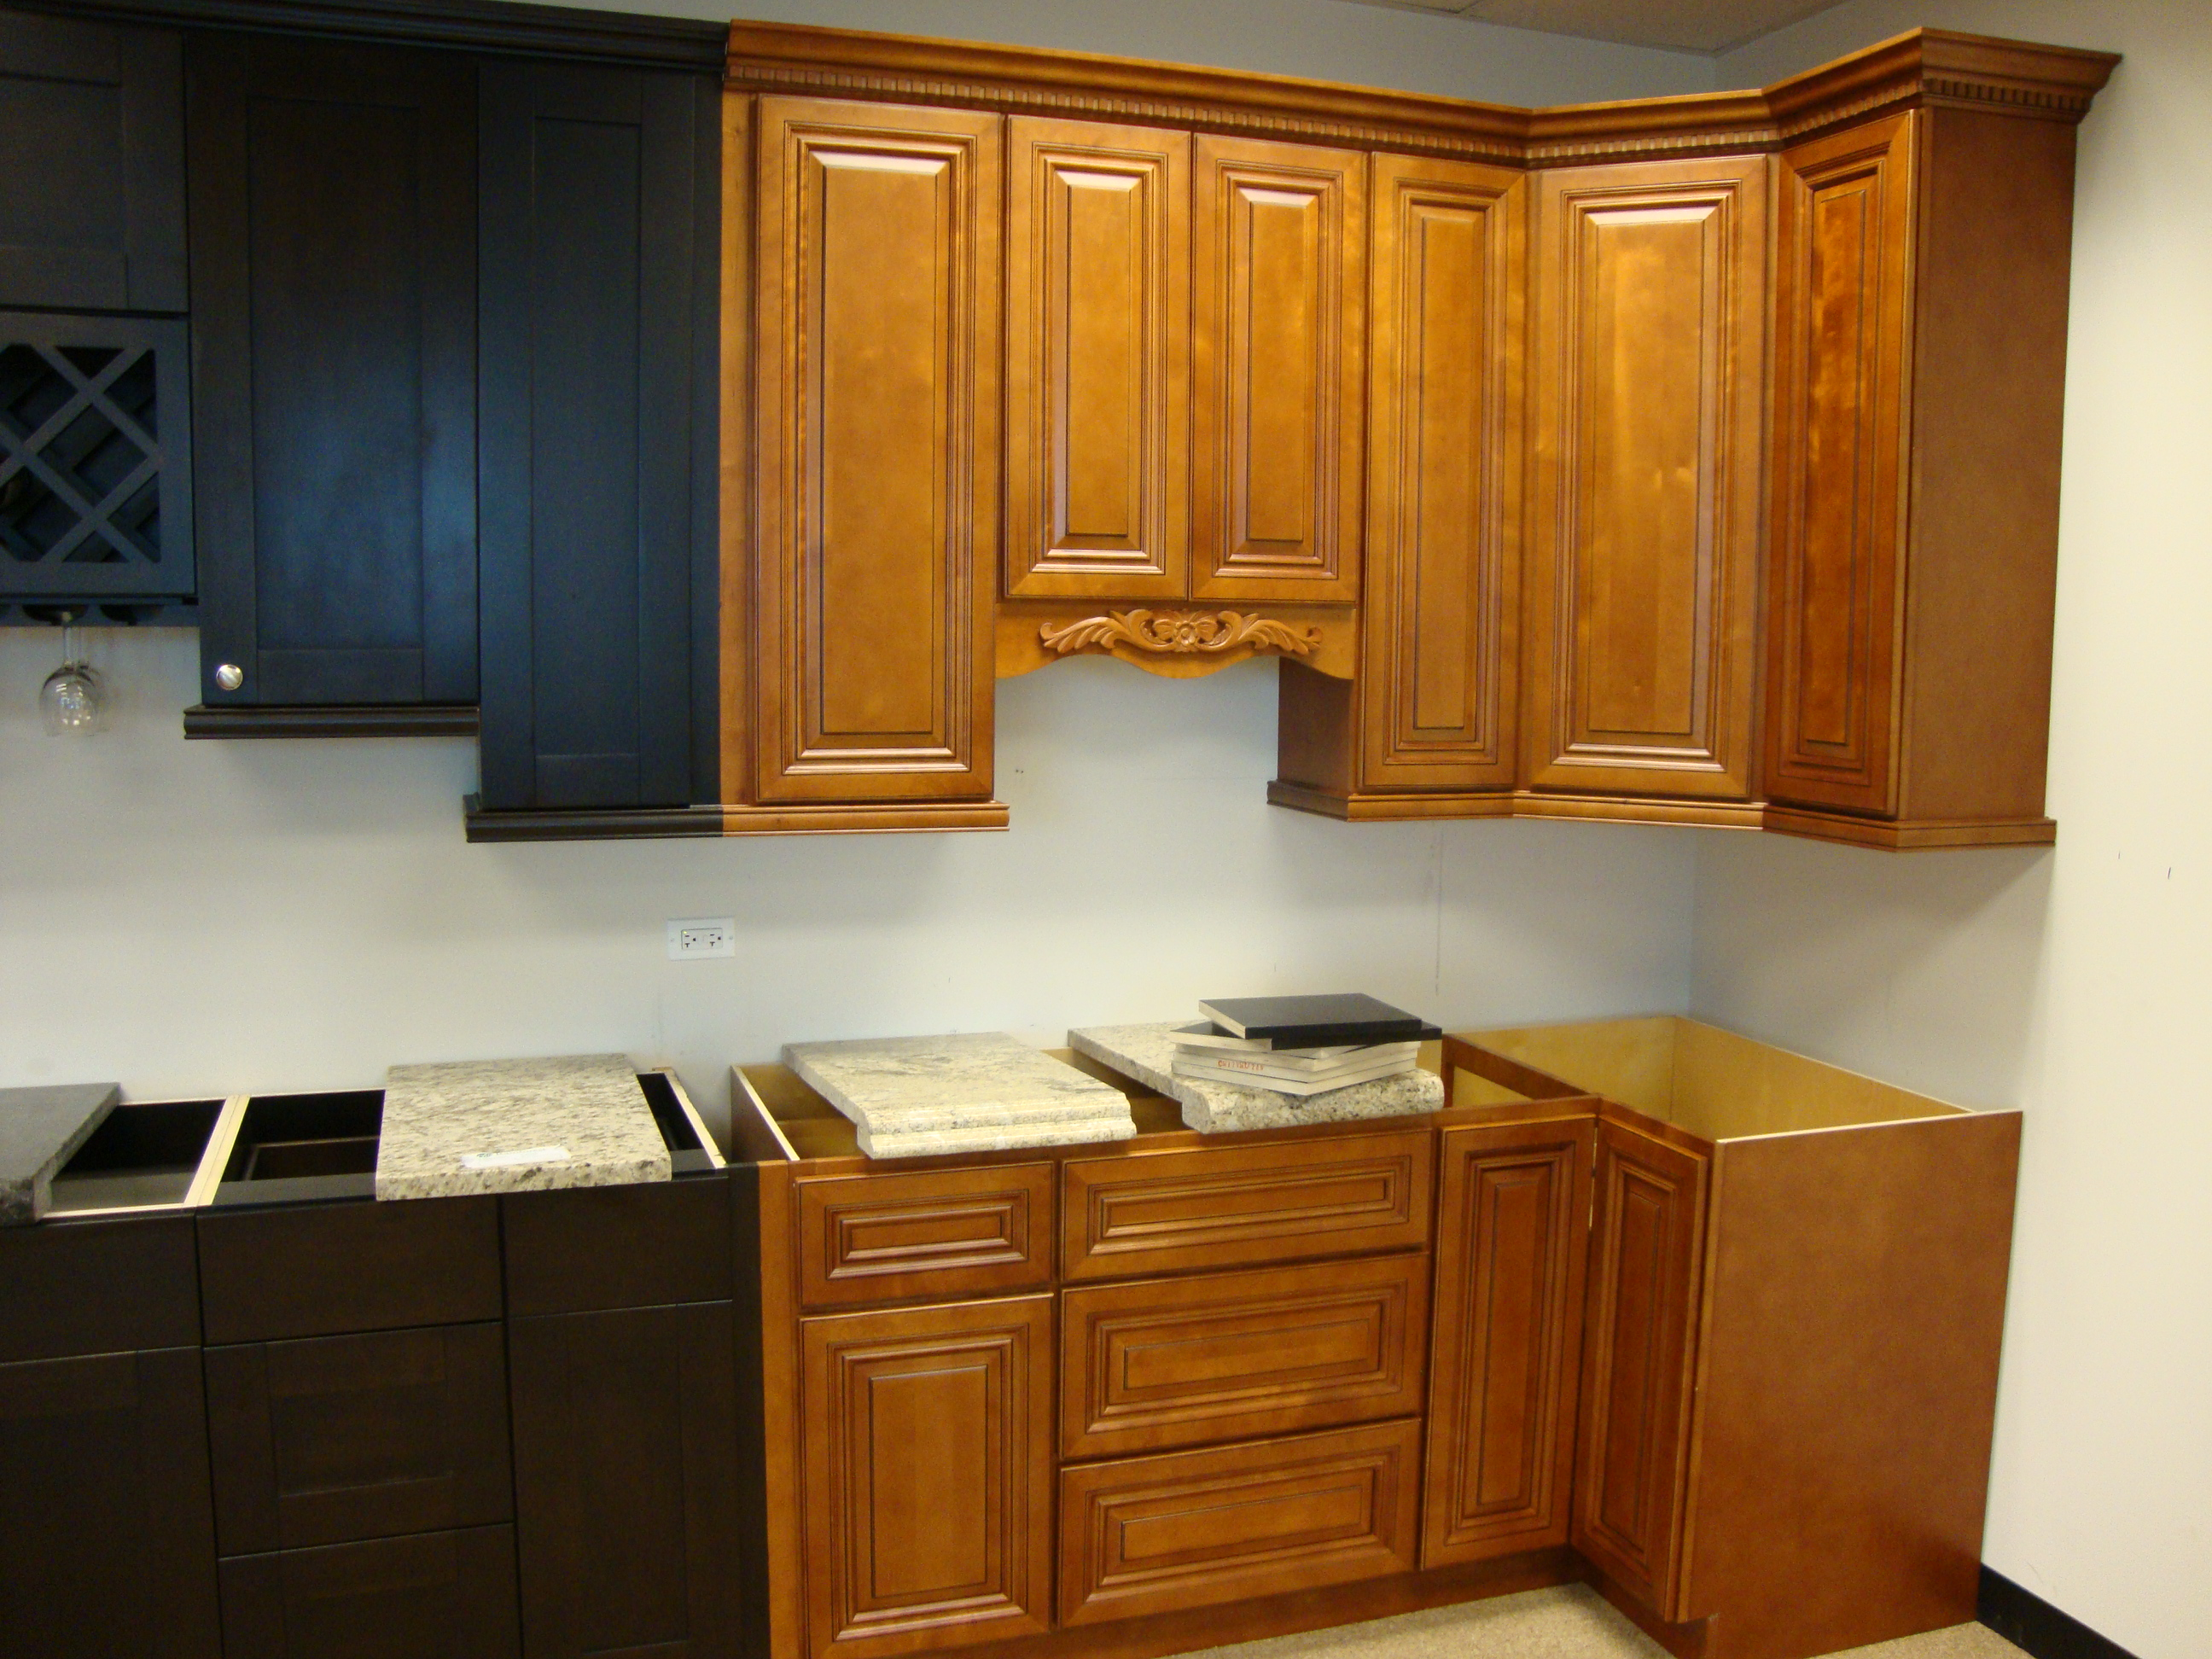 oh cabinet 4u - quality cabinets located in northeast ohio